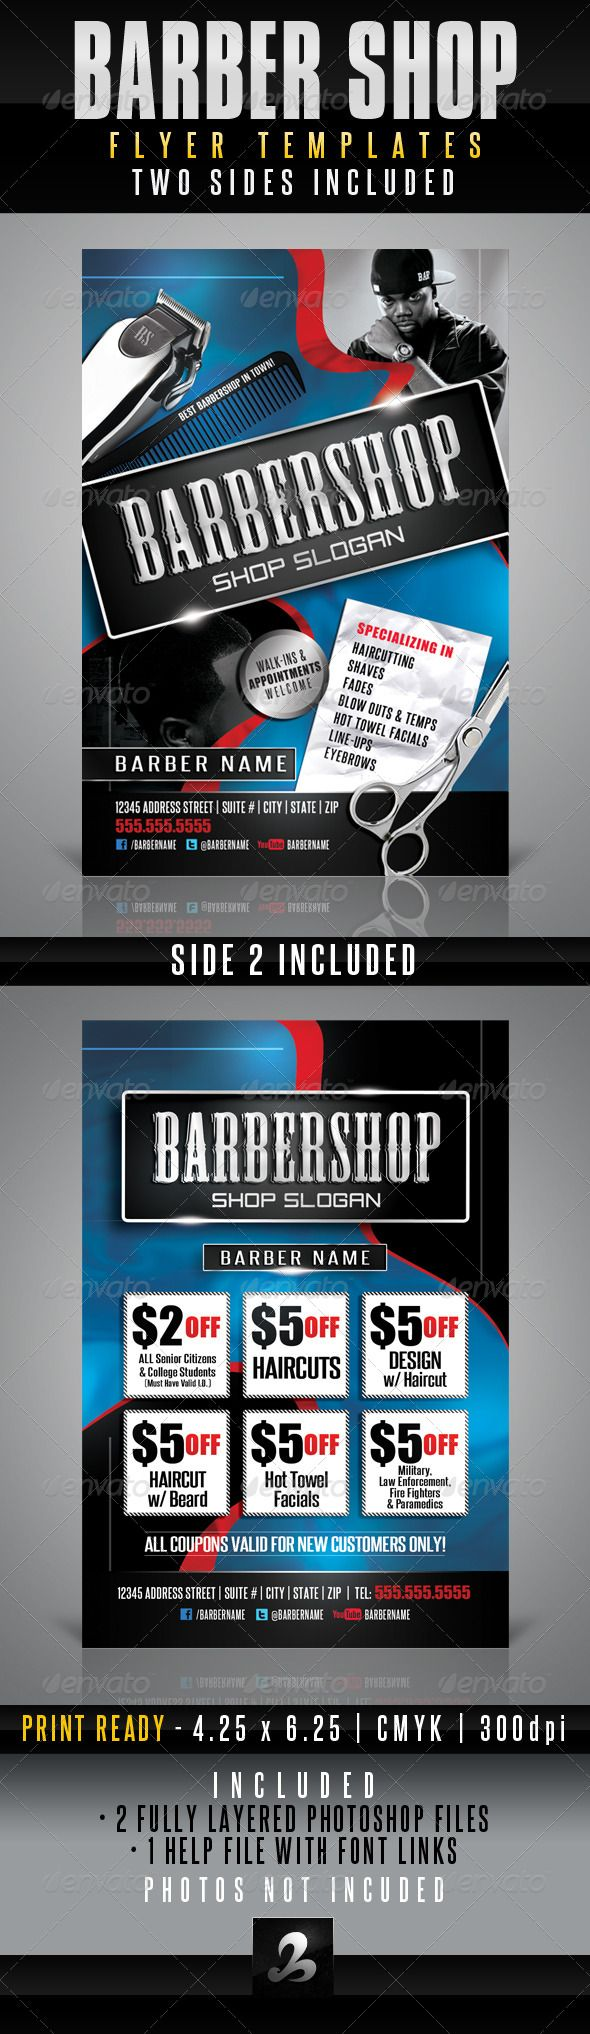 barbershop flyer templates fonts fade hair and scissors barbershop flyer templates graphicriver use this photoshop template for any barbershop salon or professional